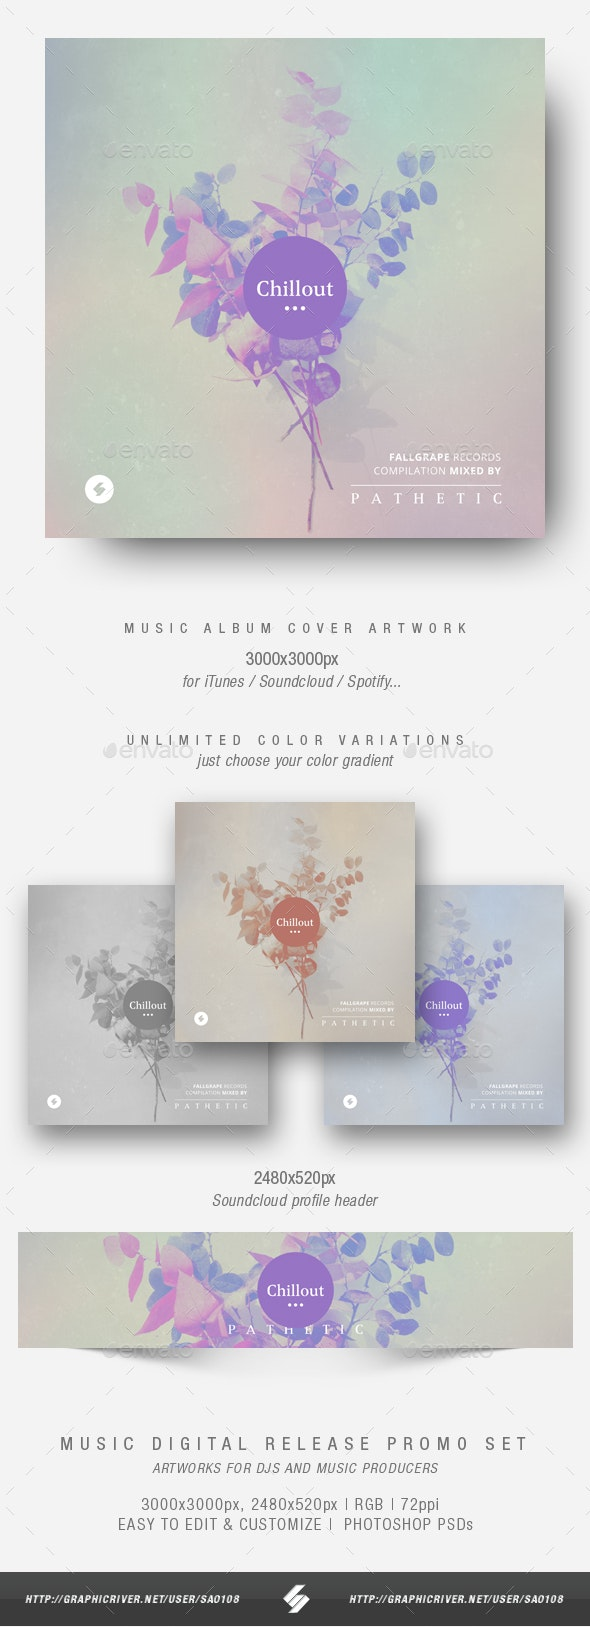 Chillout vol.3 - Music Album Cover Artwork Template - Miscellaneous Social Media